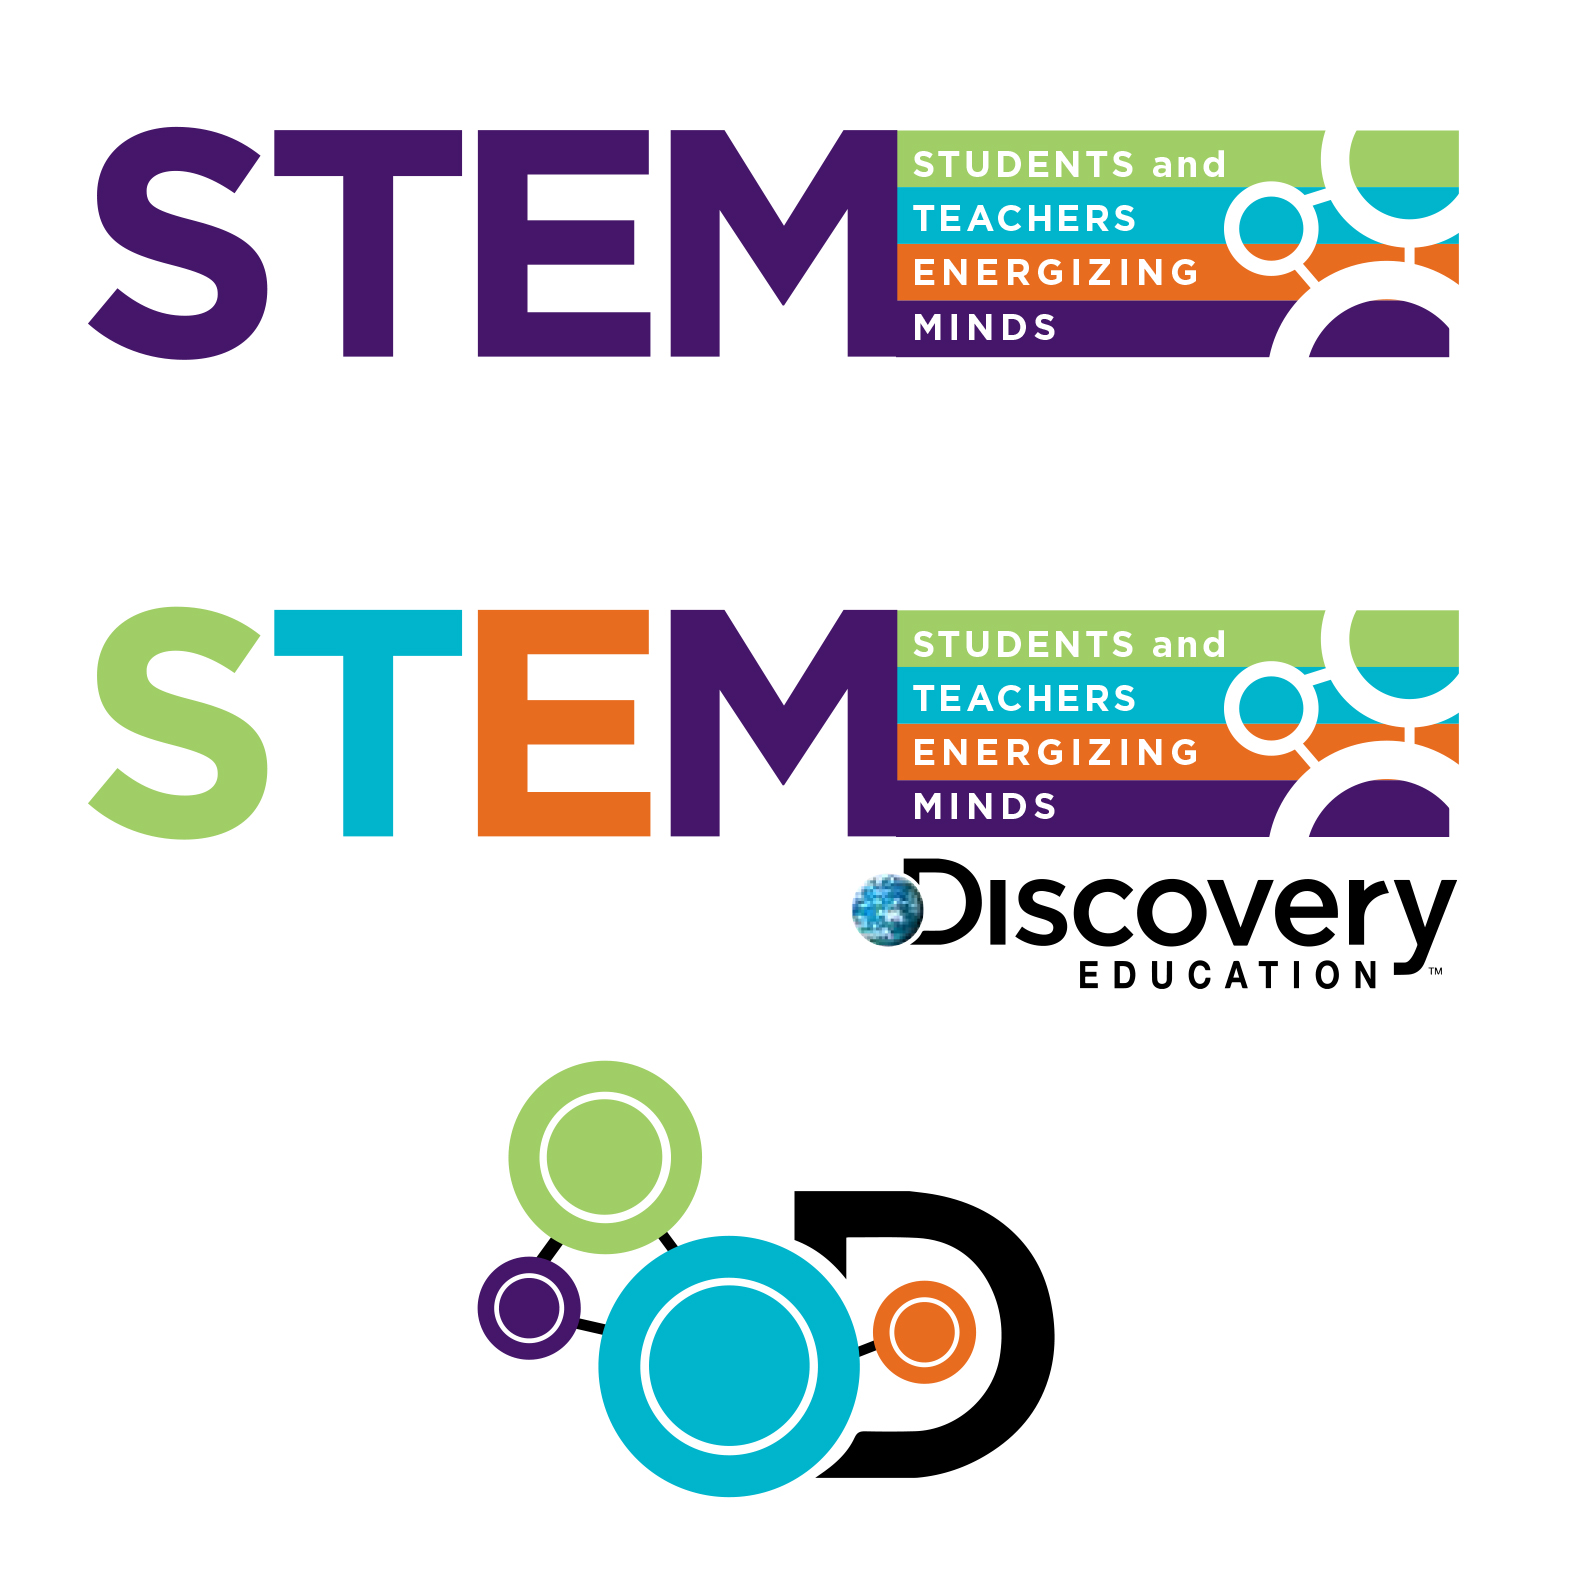 STEM_Logo_Development_KW-1.jpg